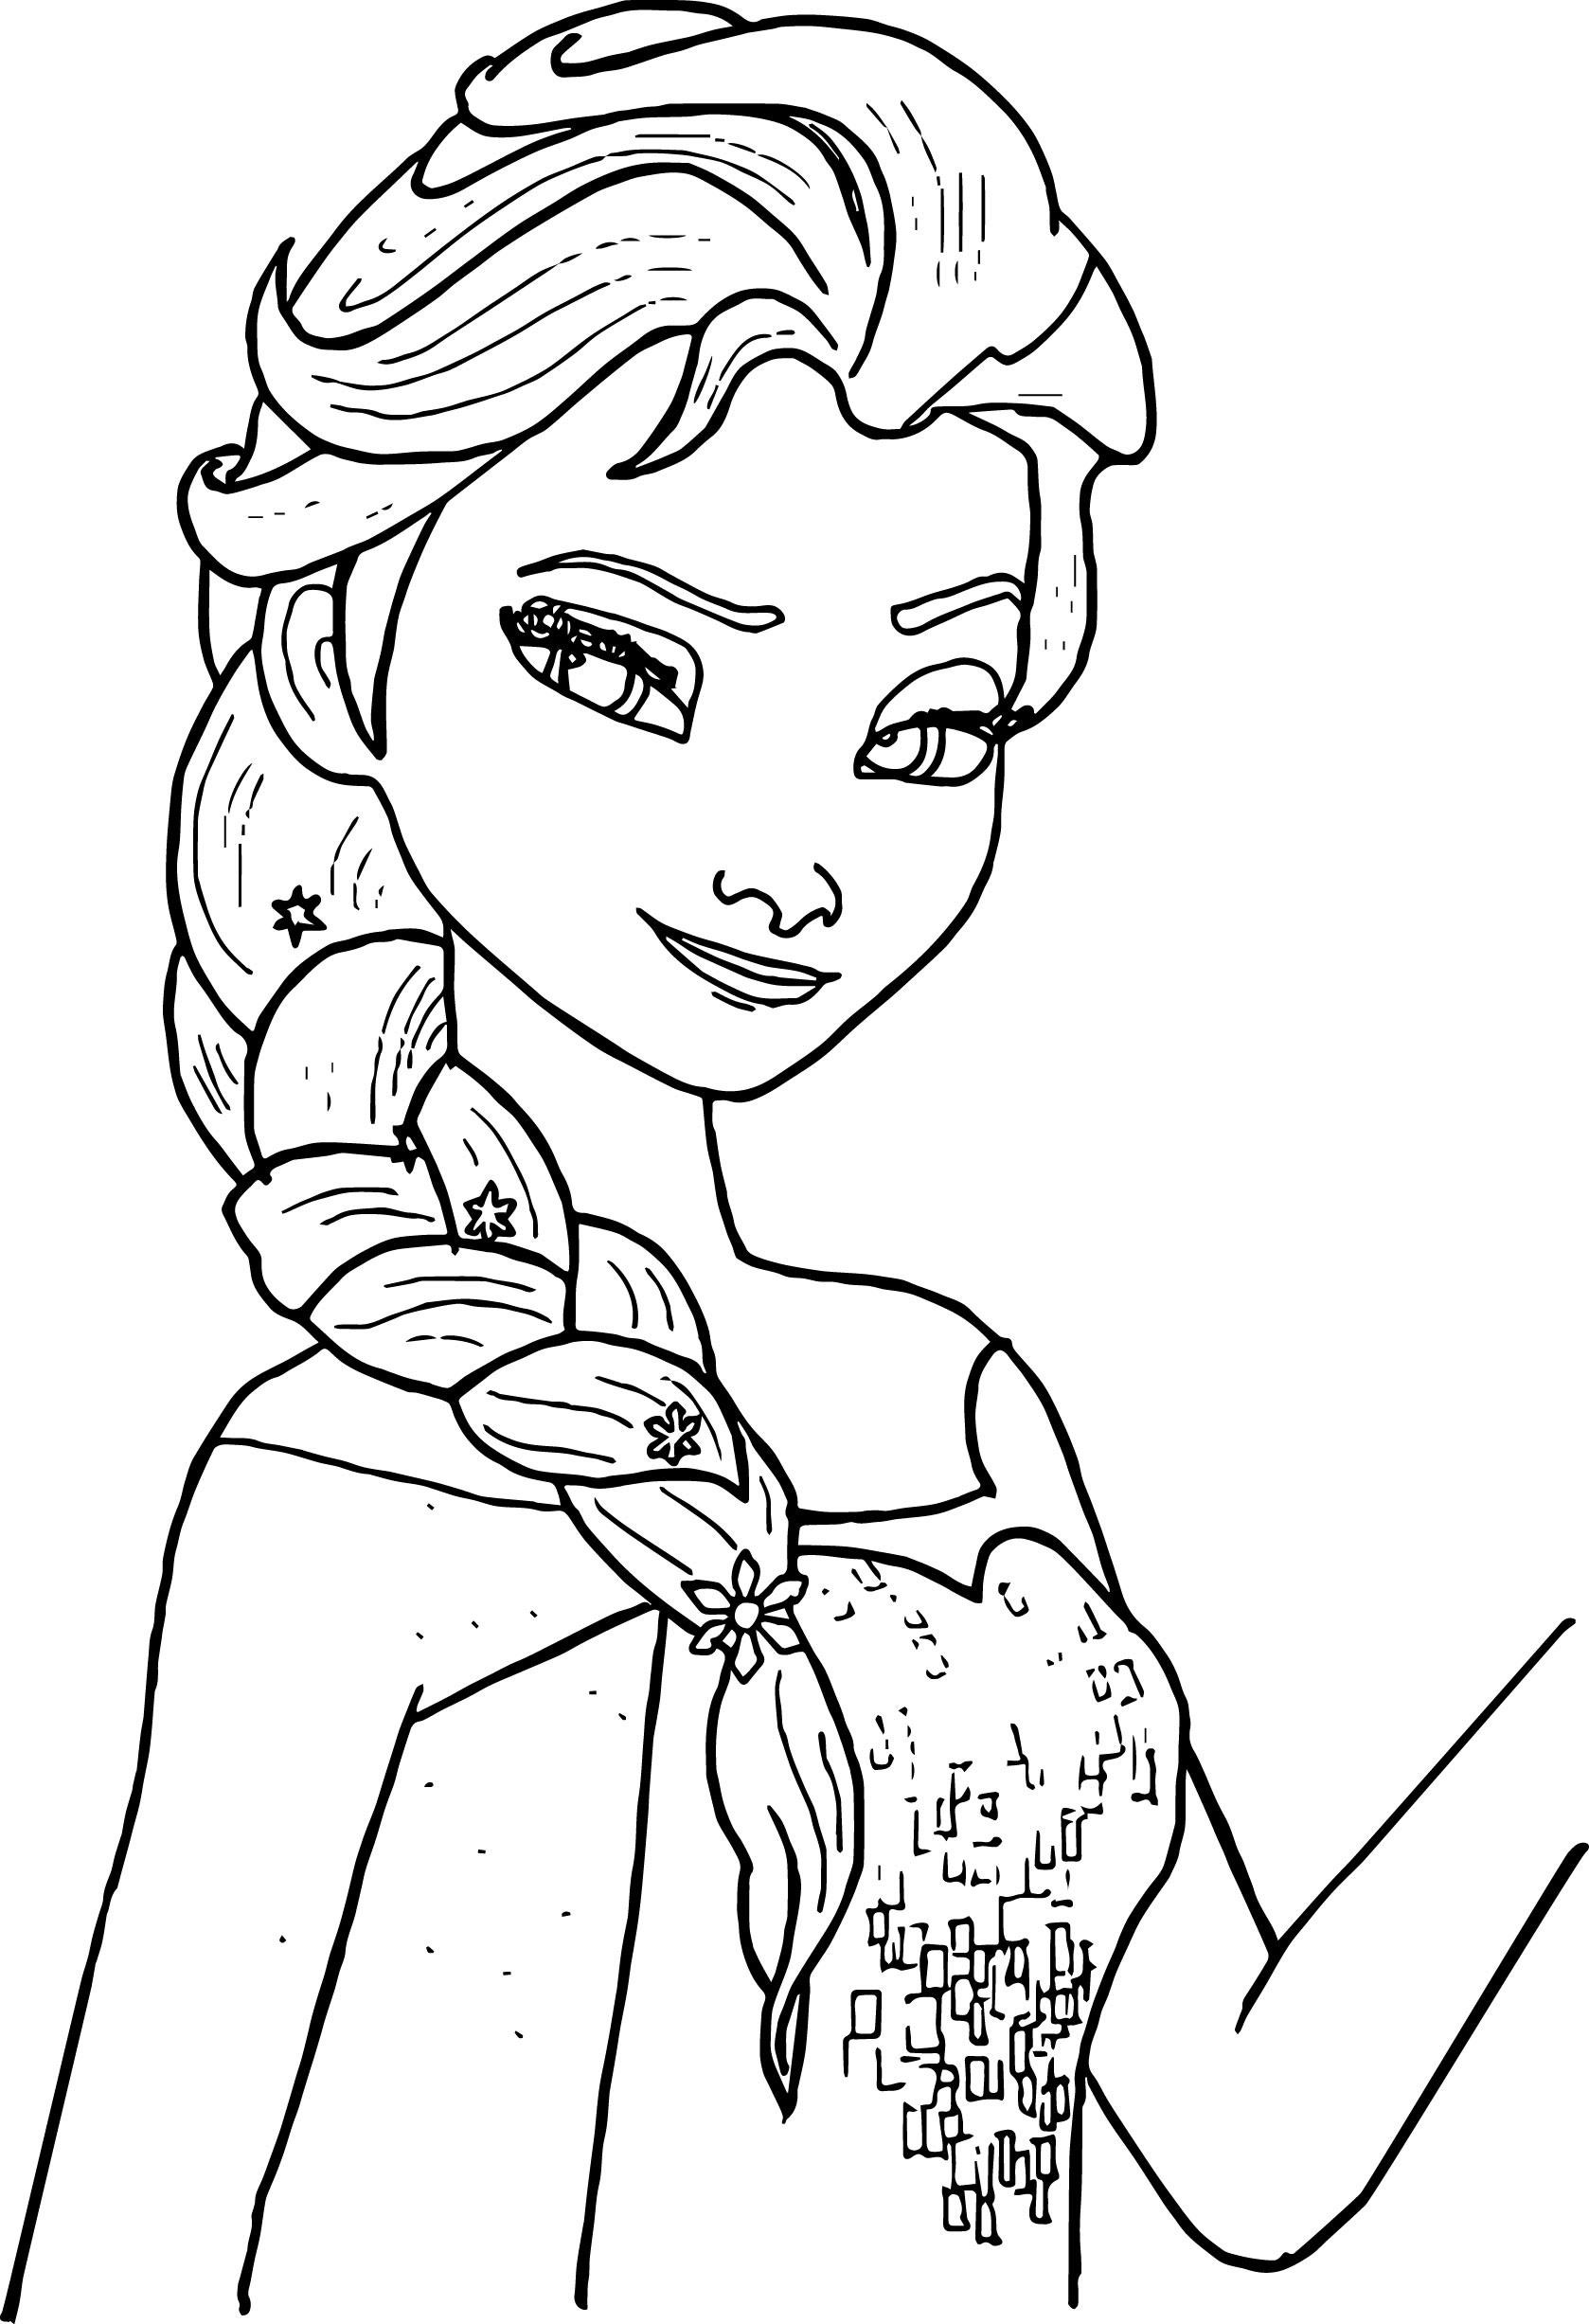 Elsa-Coloring-Page-Printables